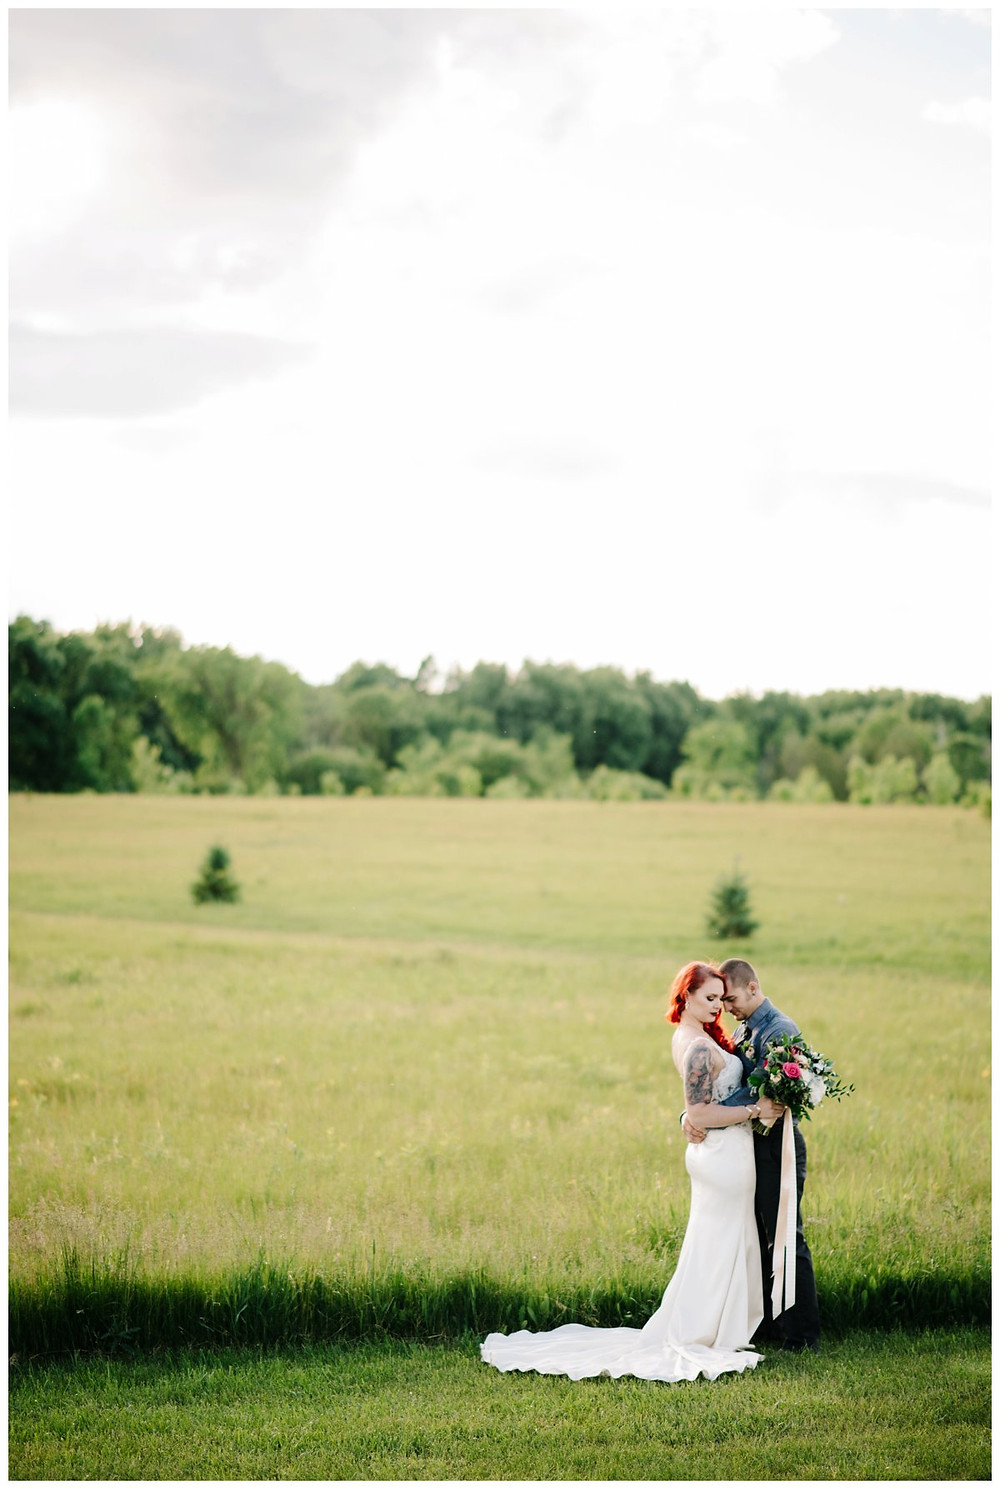 wedding-couple-nuzzle-close-in-field-at-homestead-meadows-styled-shoot-by-appleton-wedding-photographer-kyra-rane-photography